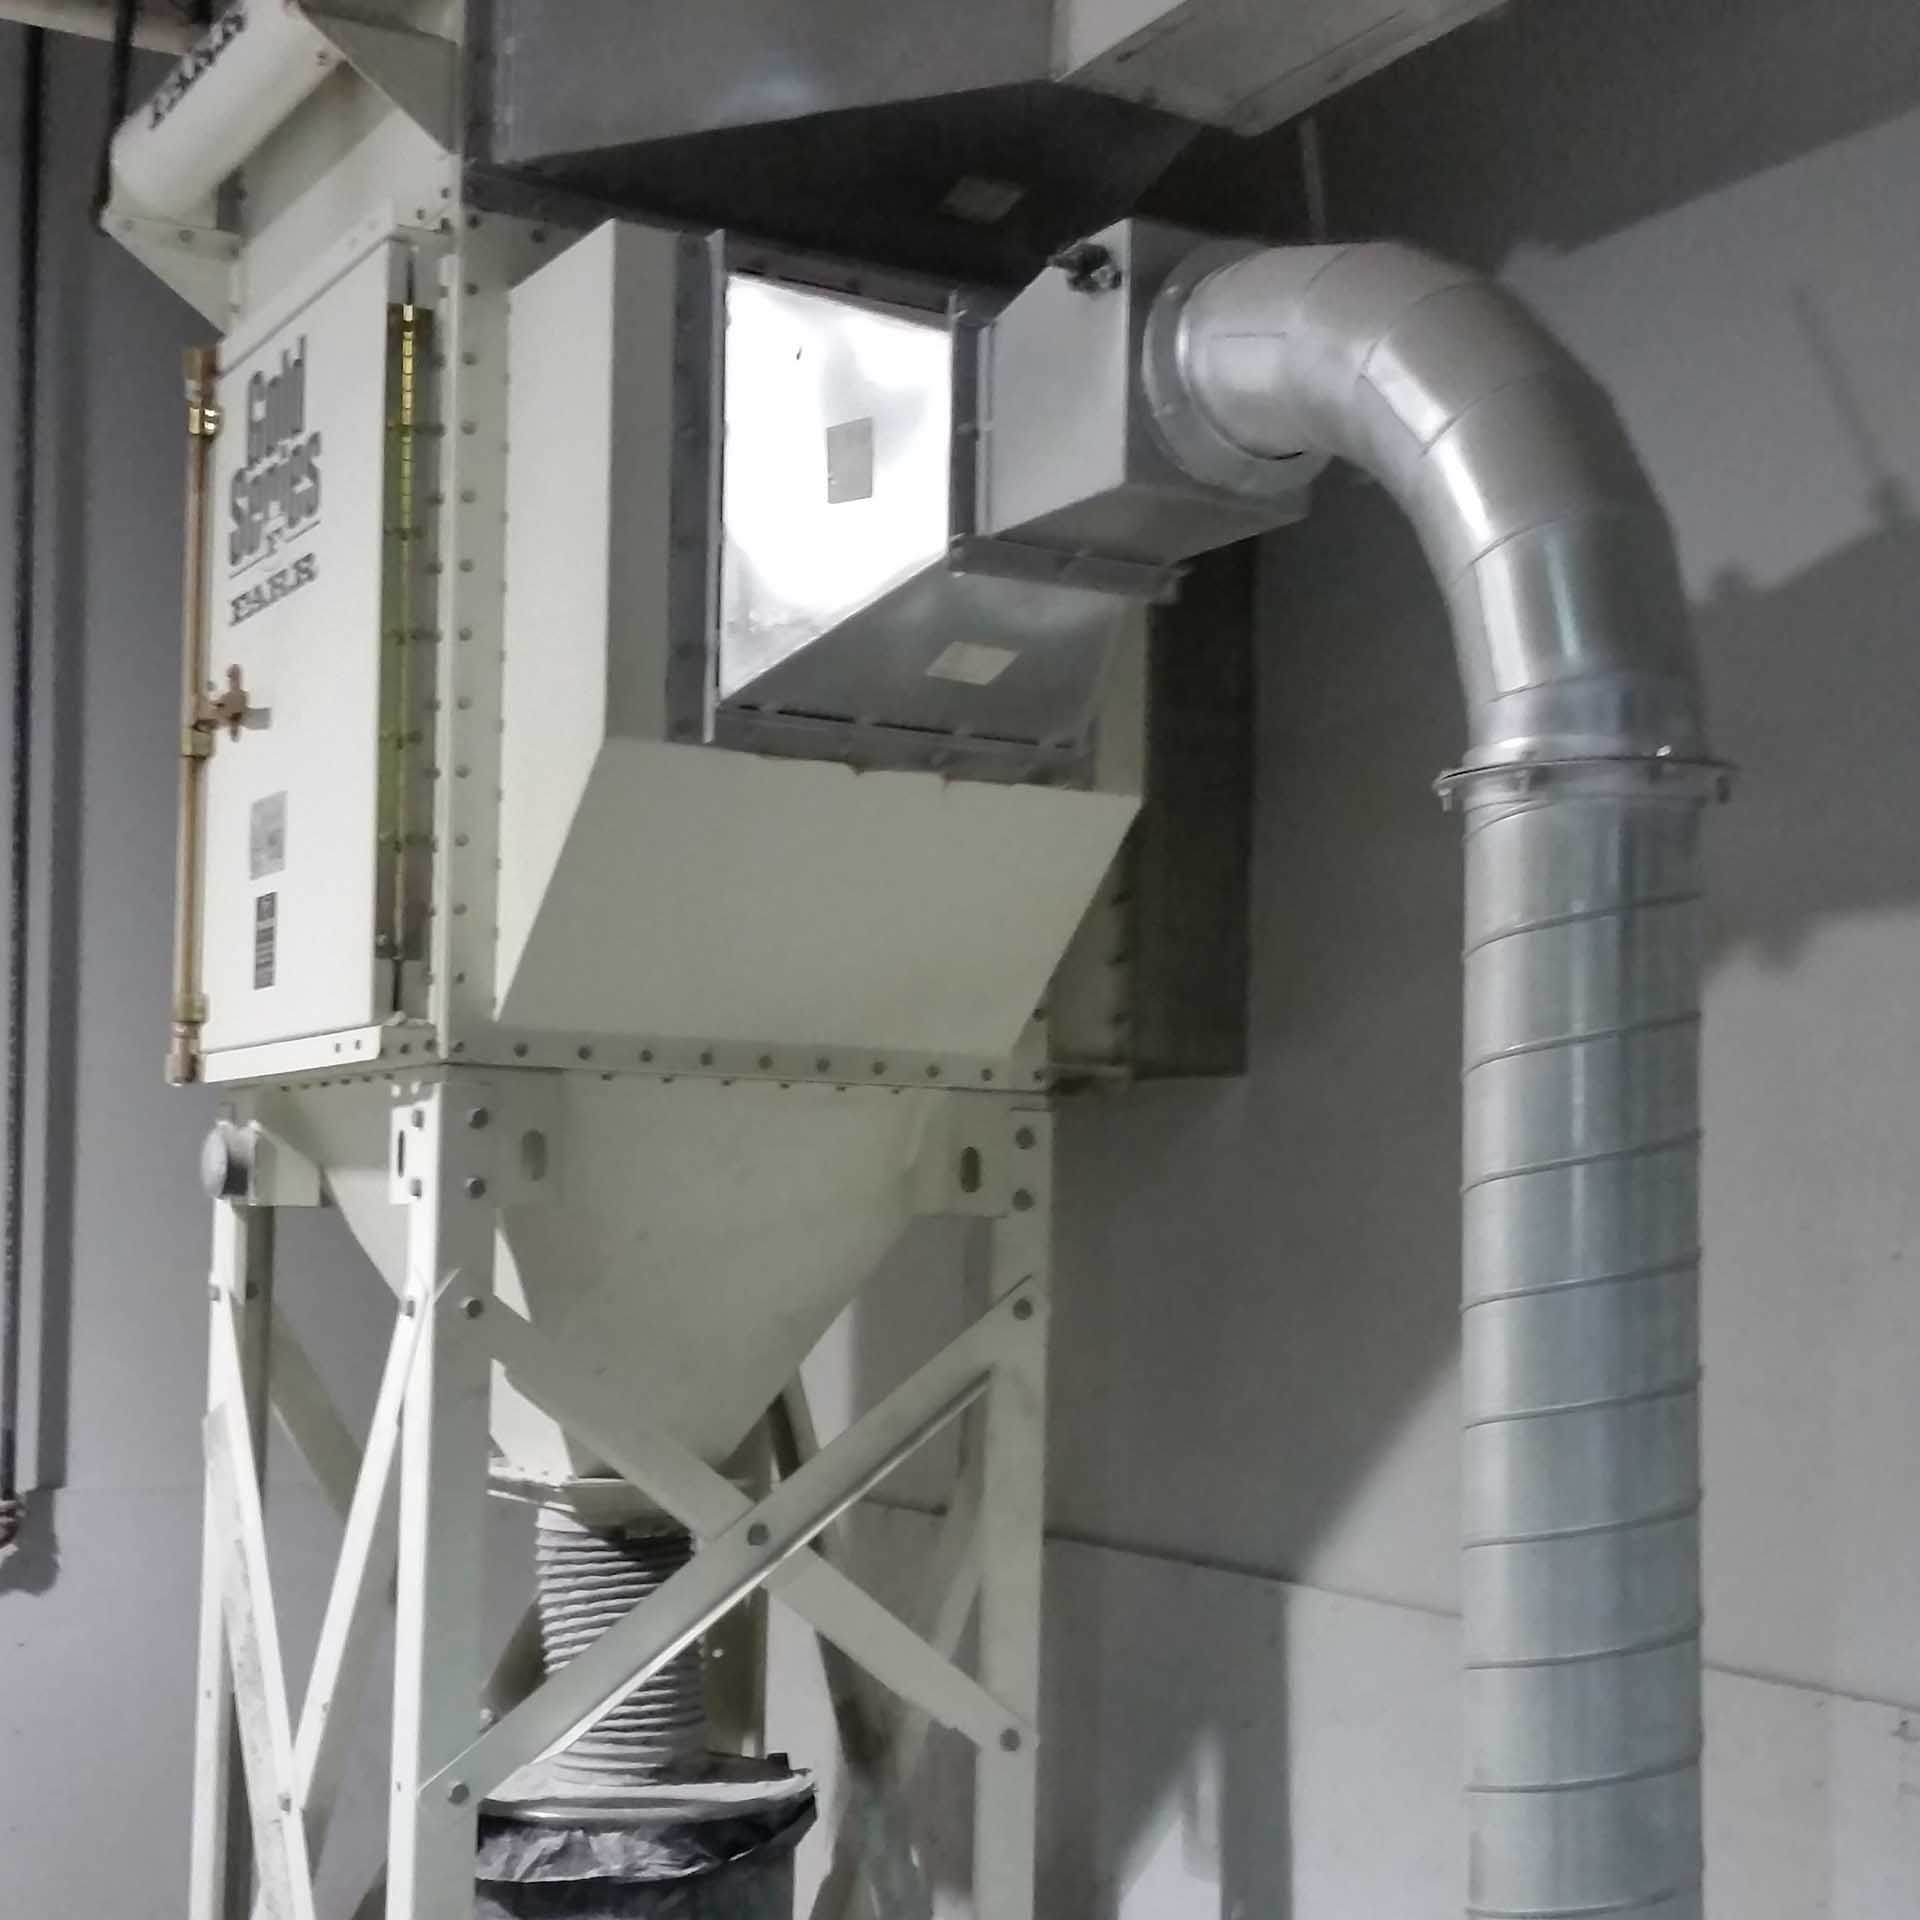 Explosion Proof Fan >> Camfil Farr Dust Collector | Used | Gold Series | Kernic